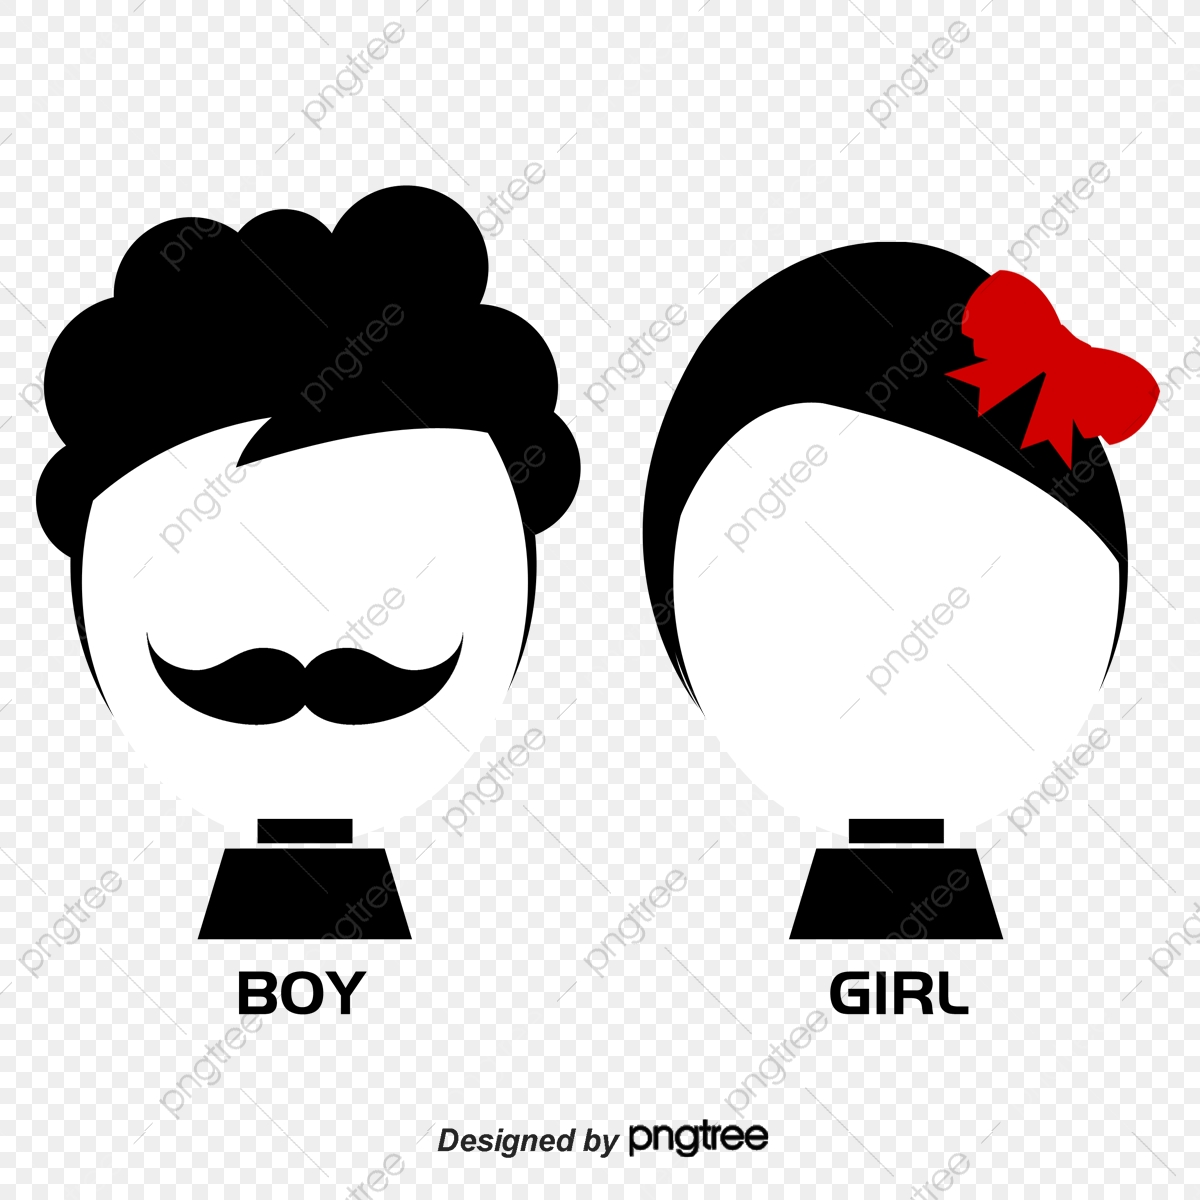 Cartoon Couple, Cartoon, Lovers, Bow PNG Transparent Clipart Image